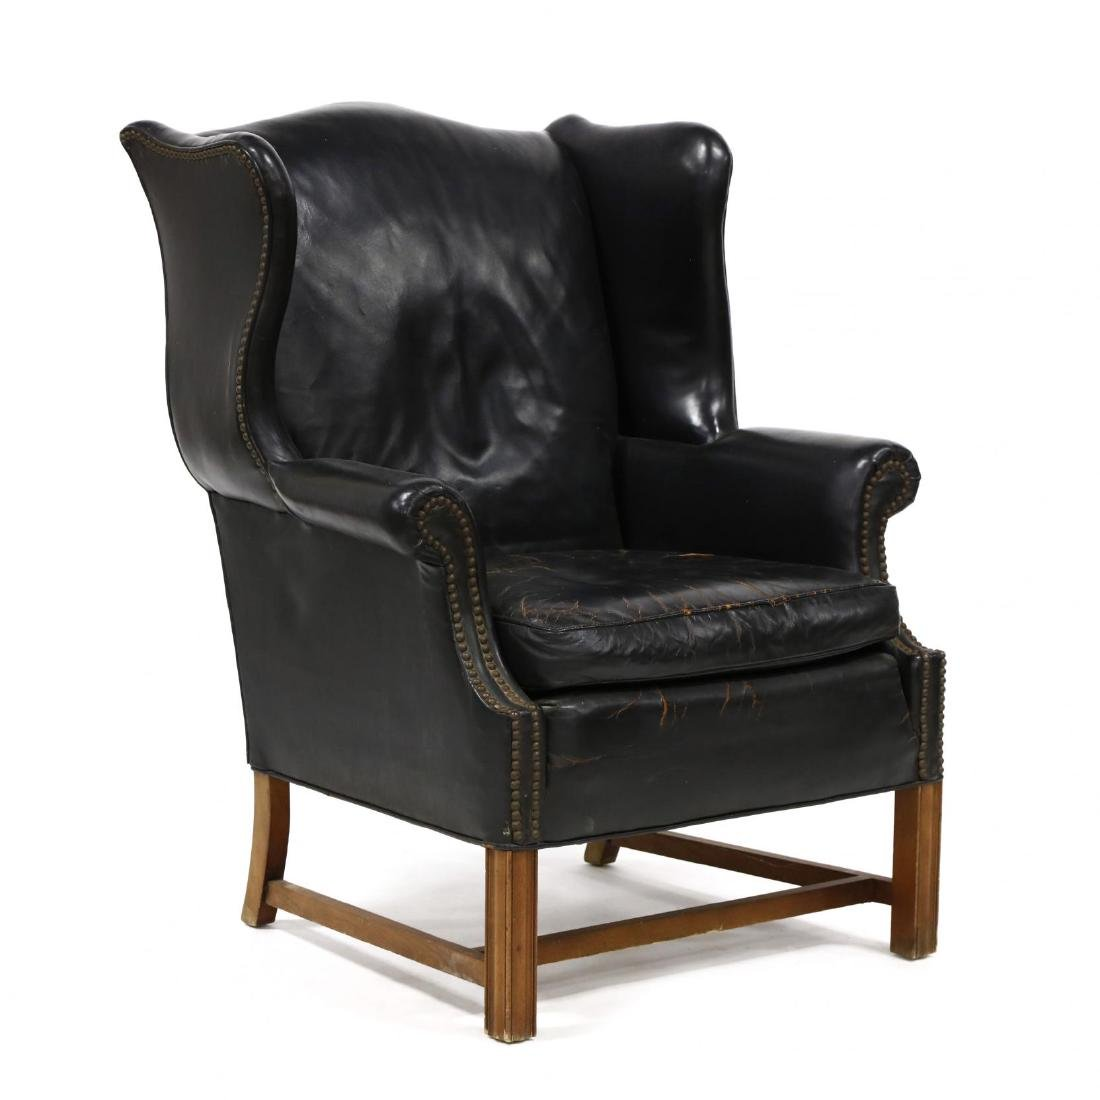 Century Furniture, Vintage Leather Upholstered